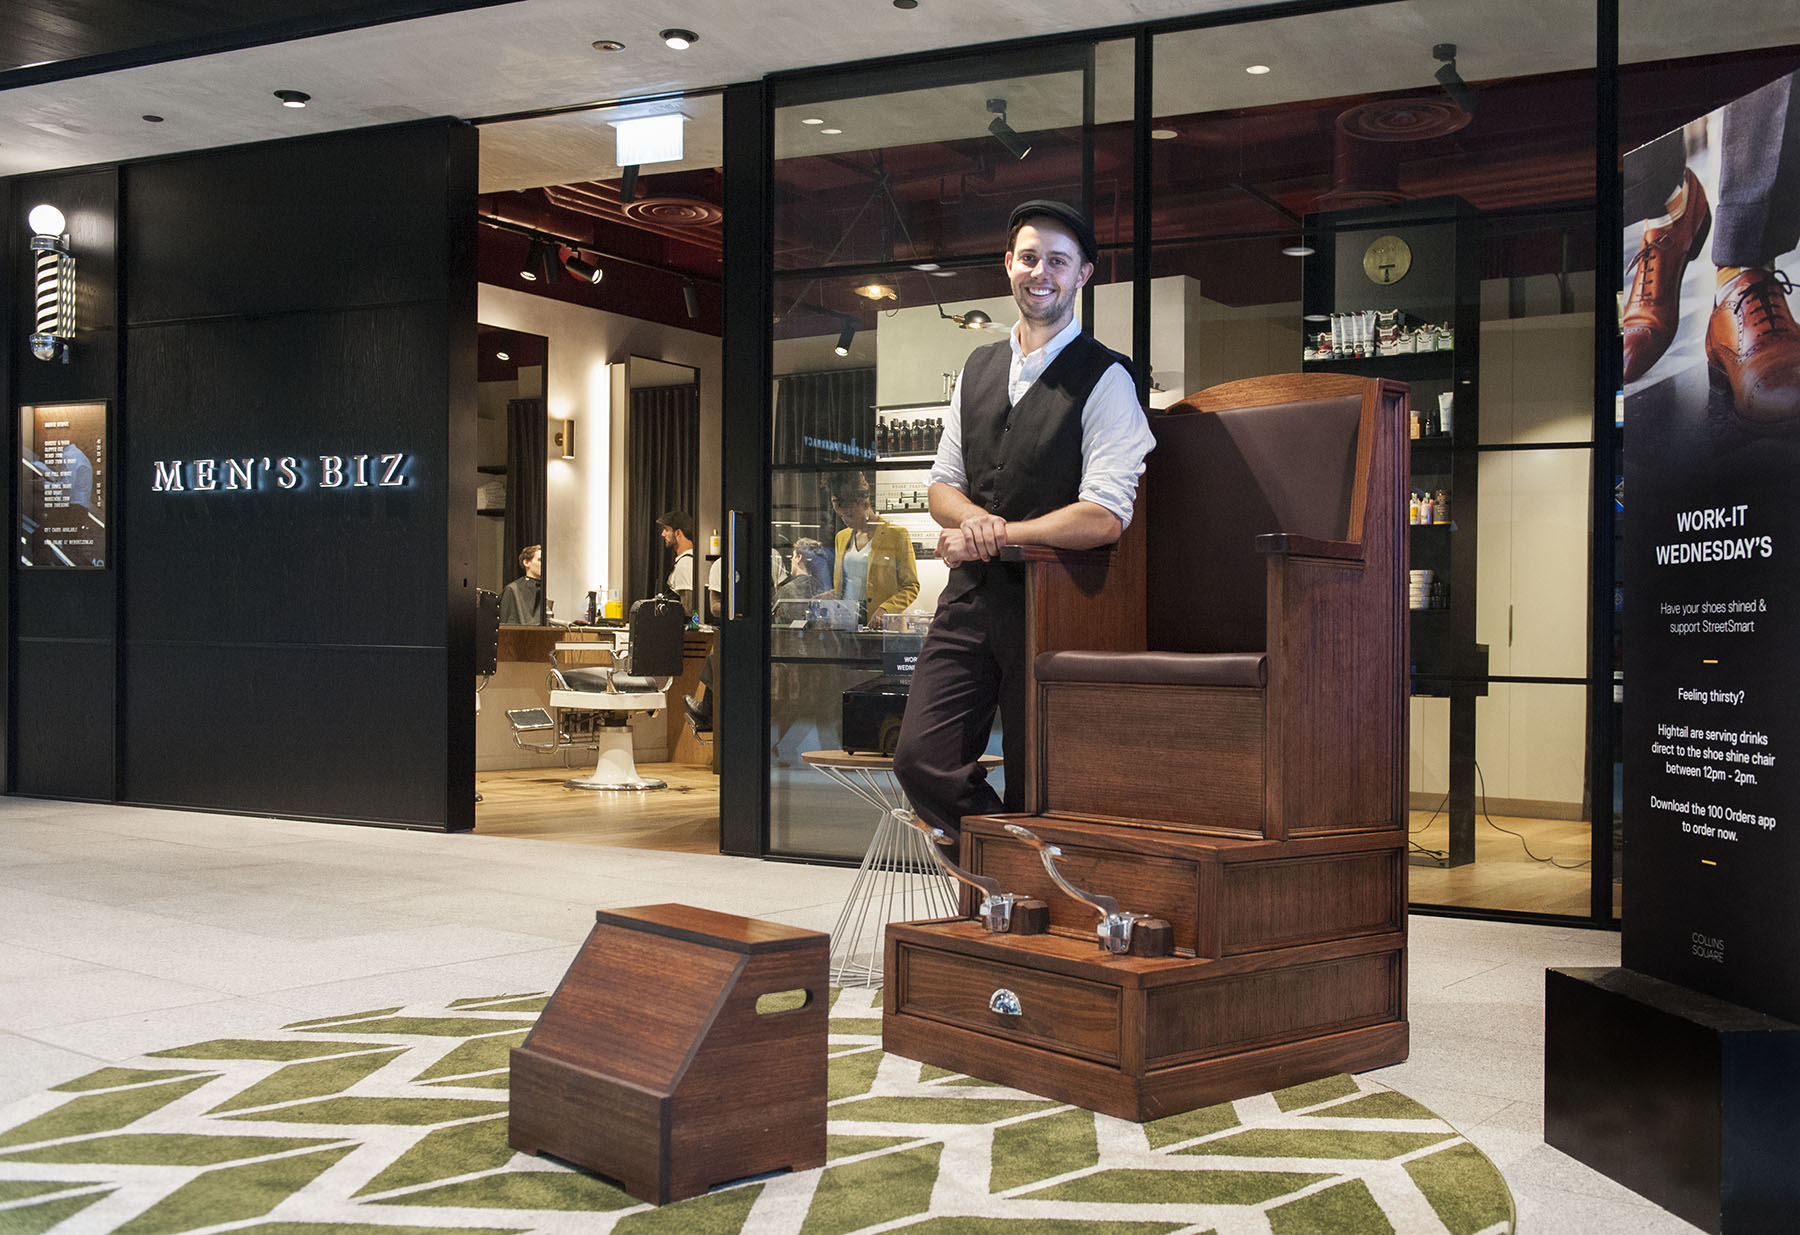 'Work-It Wednesdays' shoeshine activation at Collins Square, Docklands